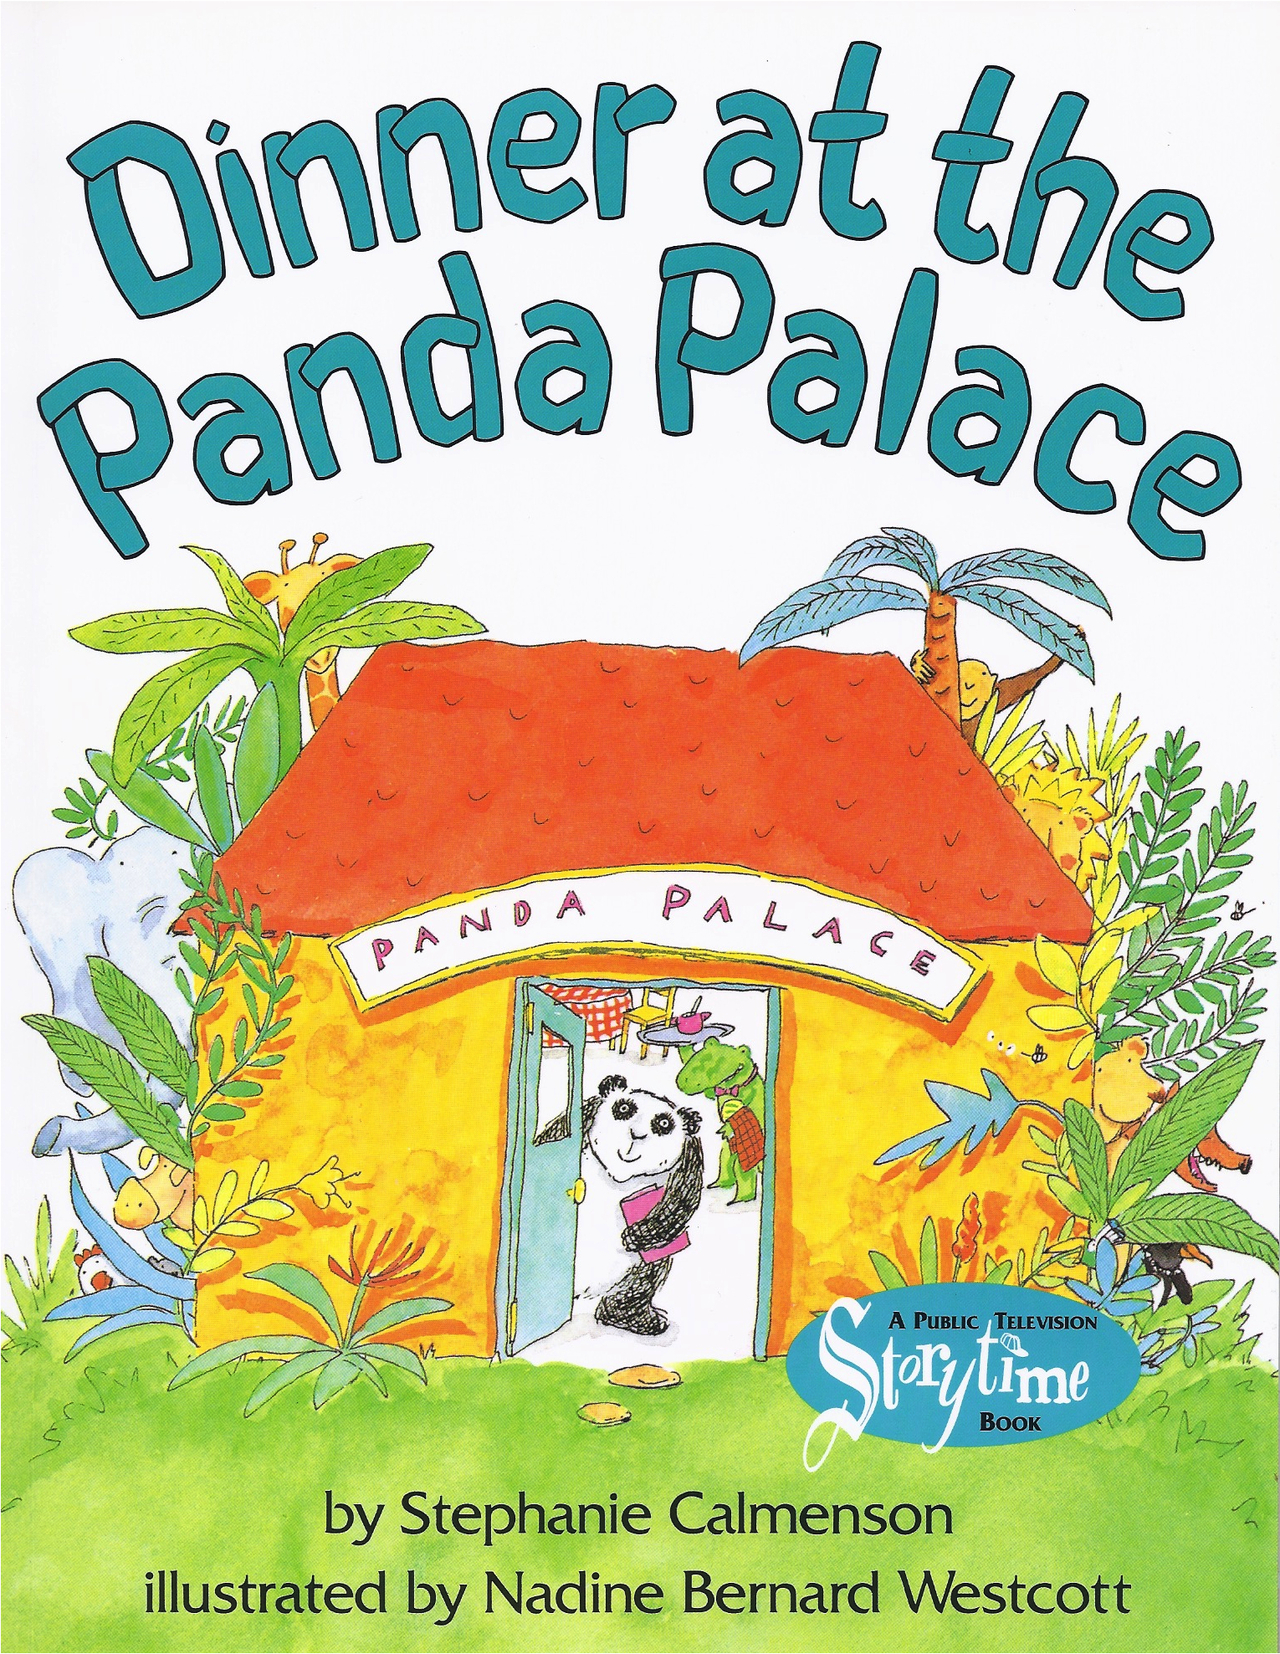 Dinner at the panda palace cover 4